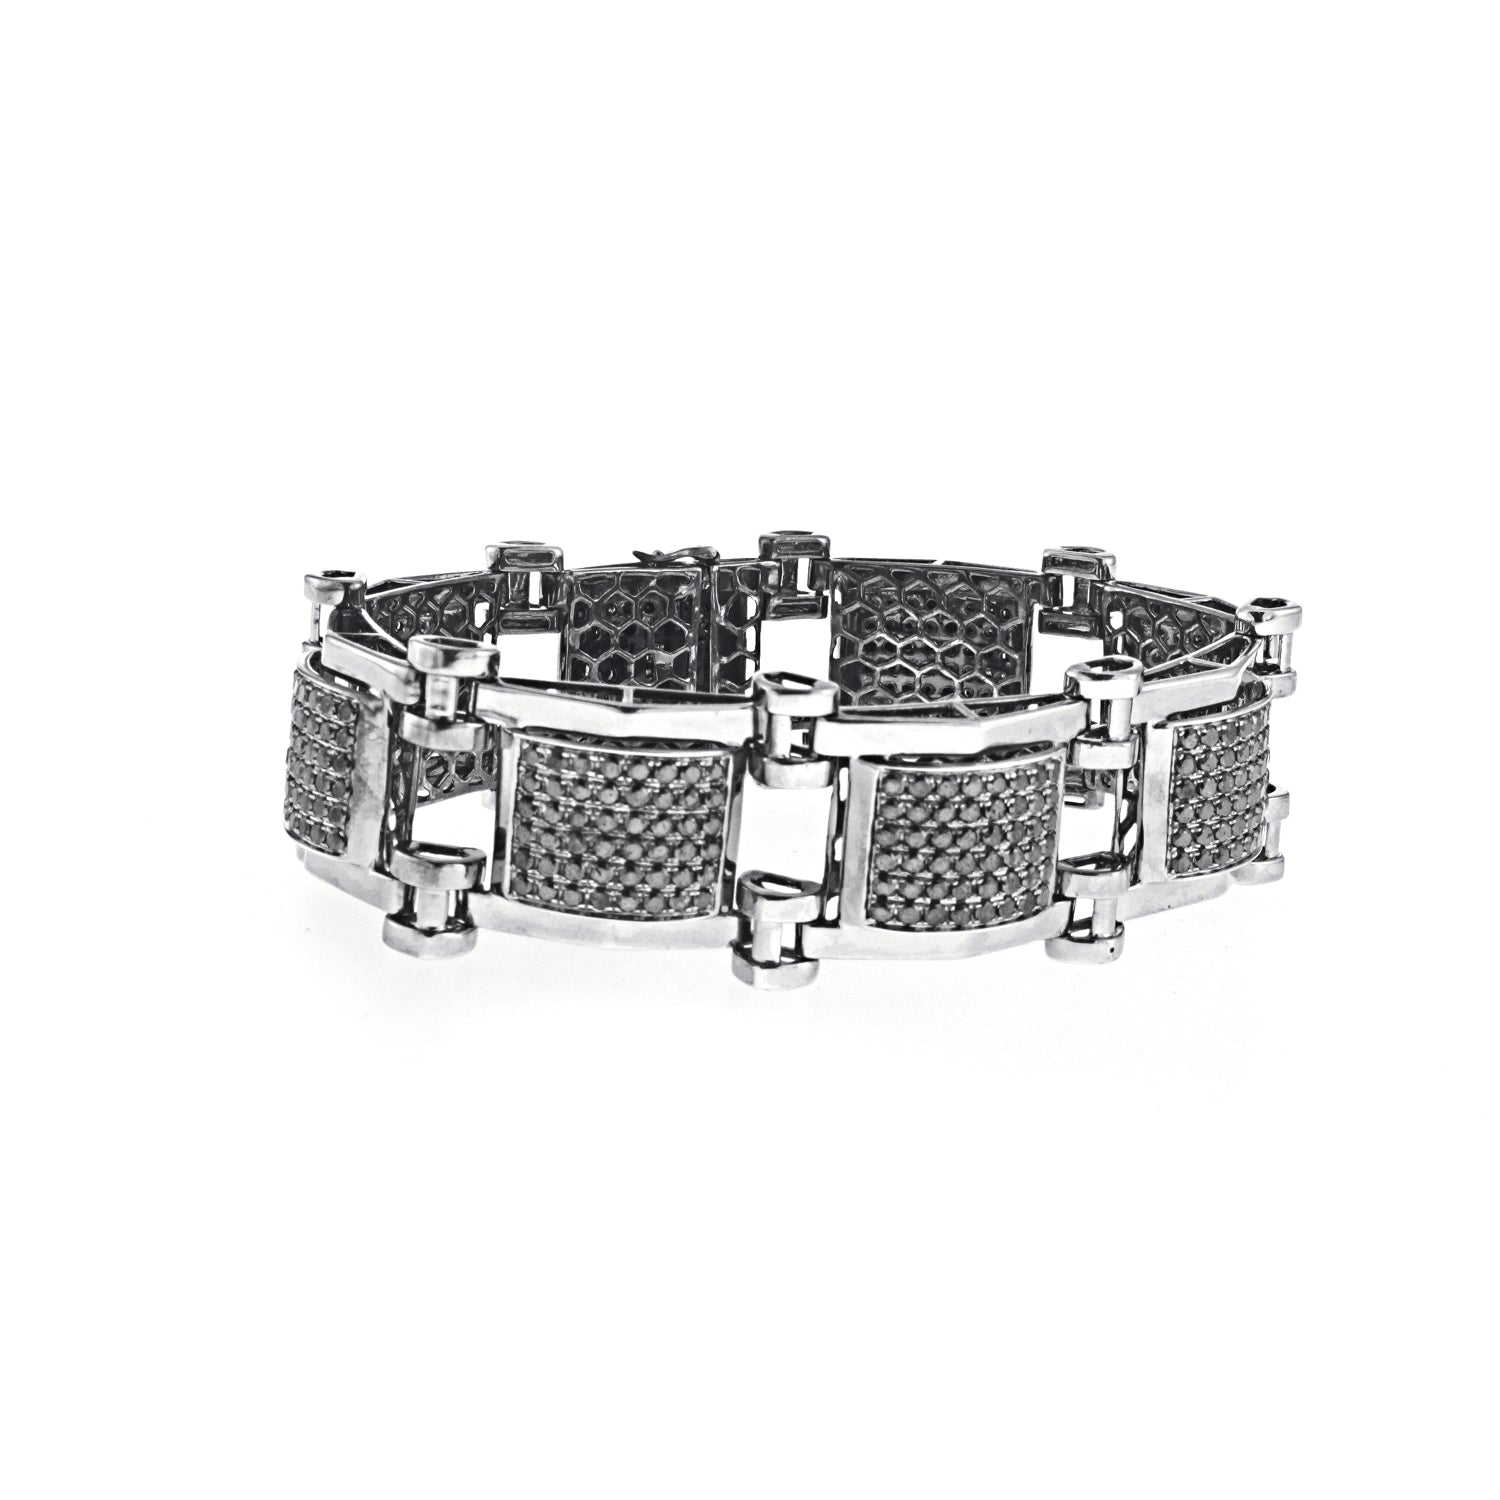 Men's PVD Coated Bracelet with Black Diamonds